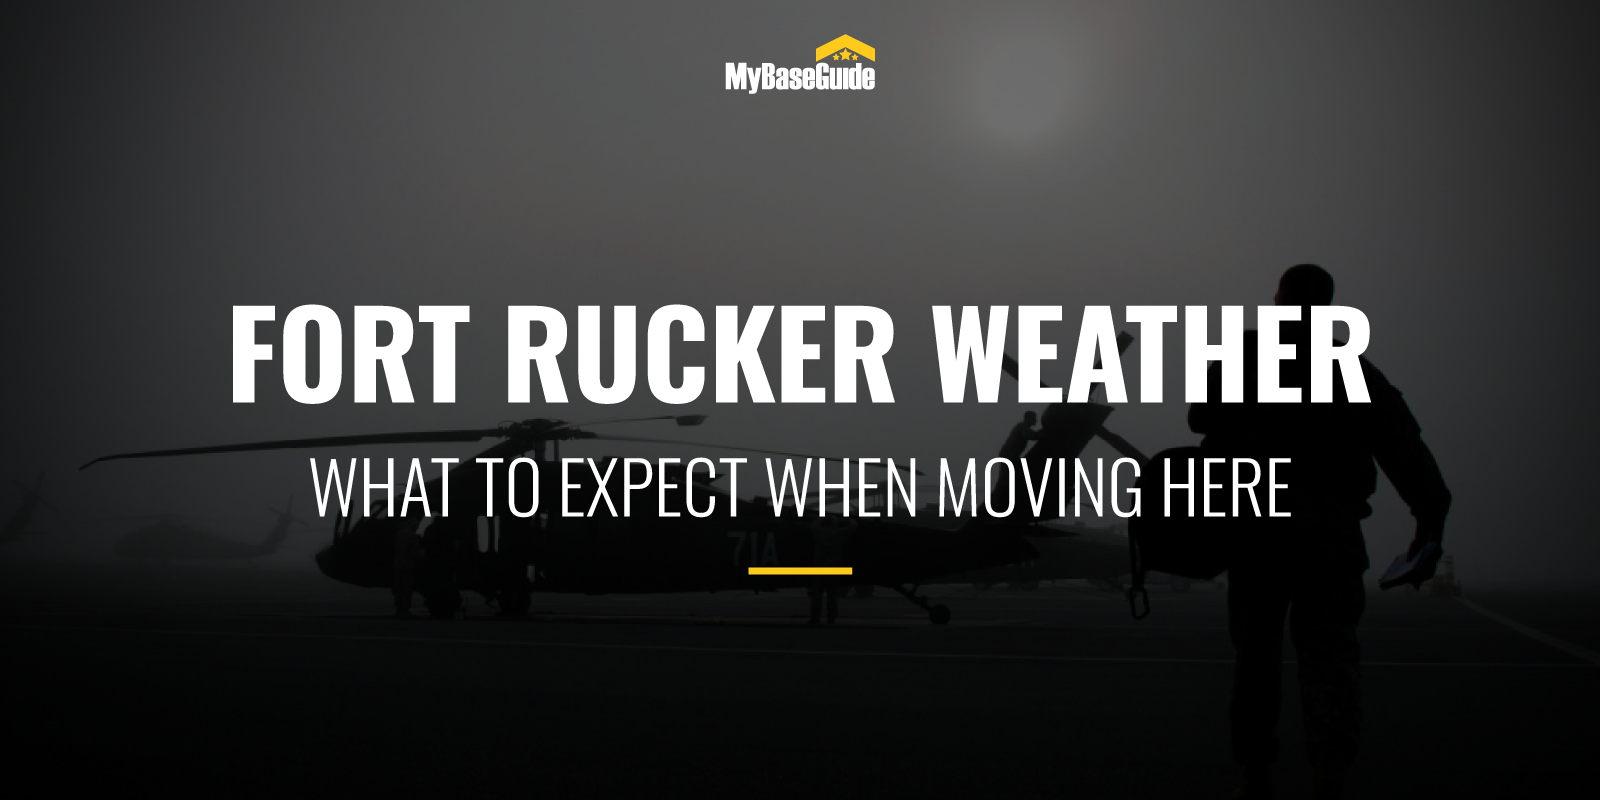 Fort Rucker Weather: What To Expect When Moving Here